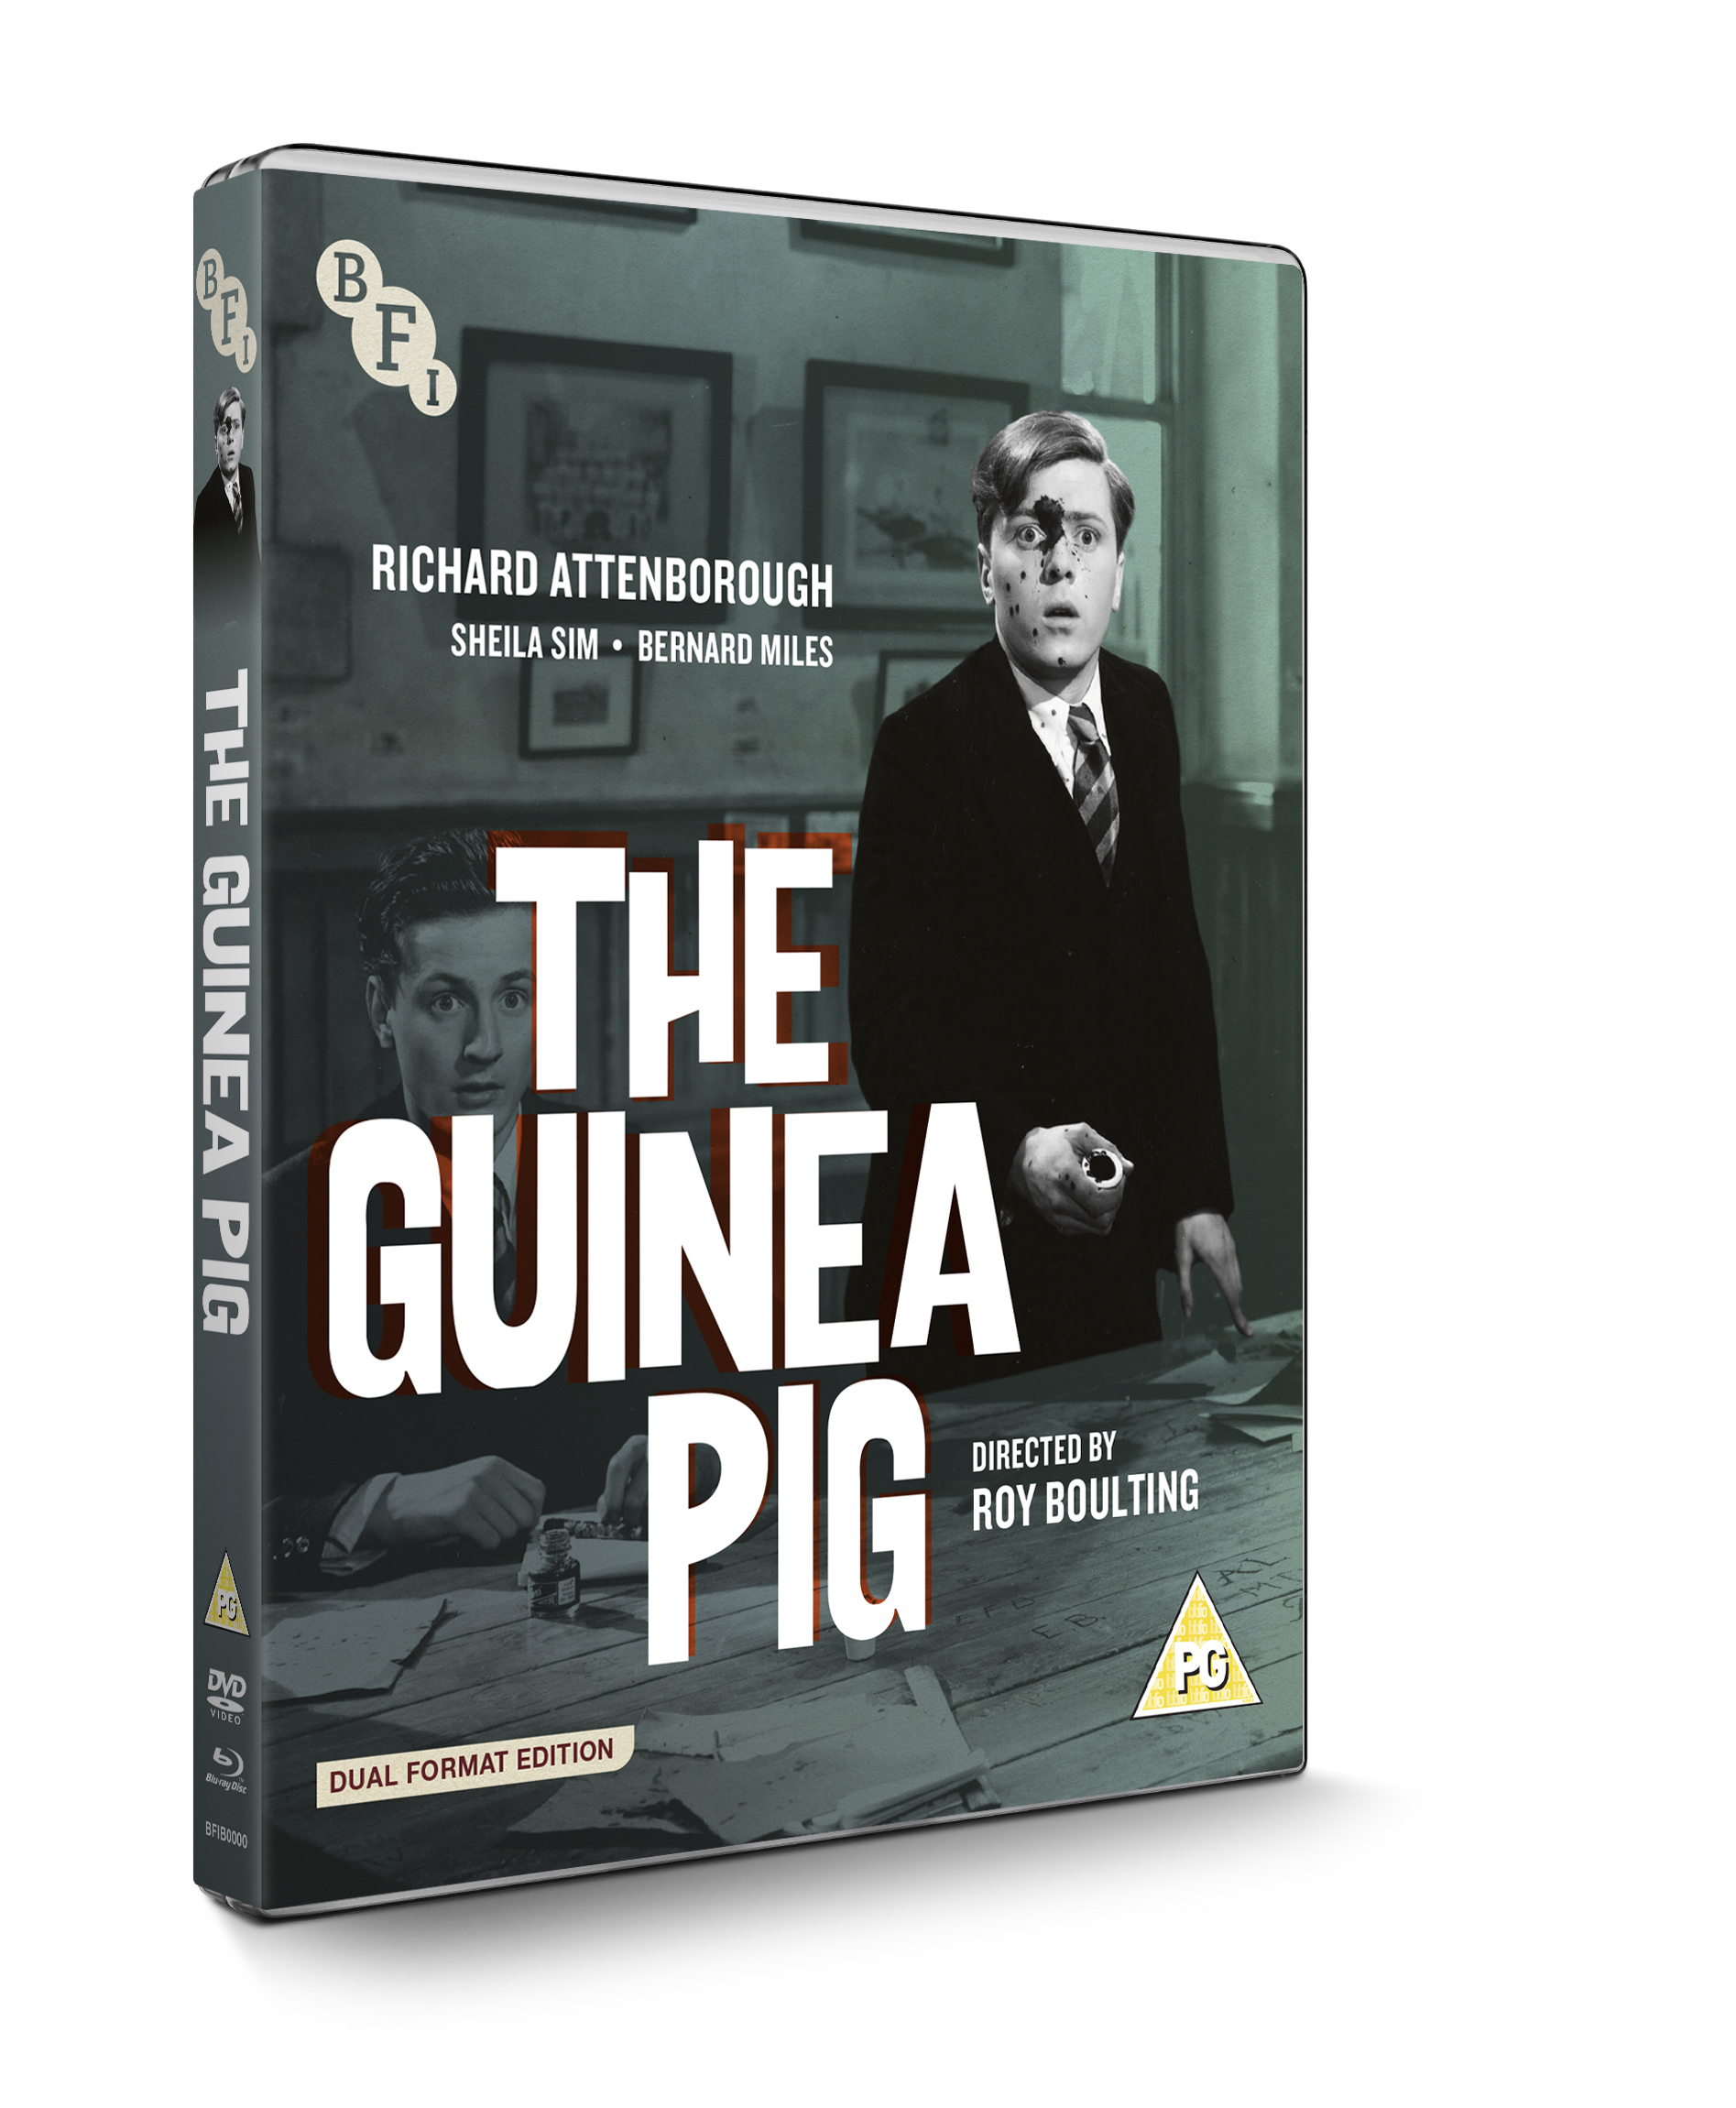 Buy PRE-ORDER The Guinea Pig (Dual Format Edition)